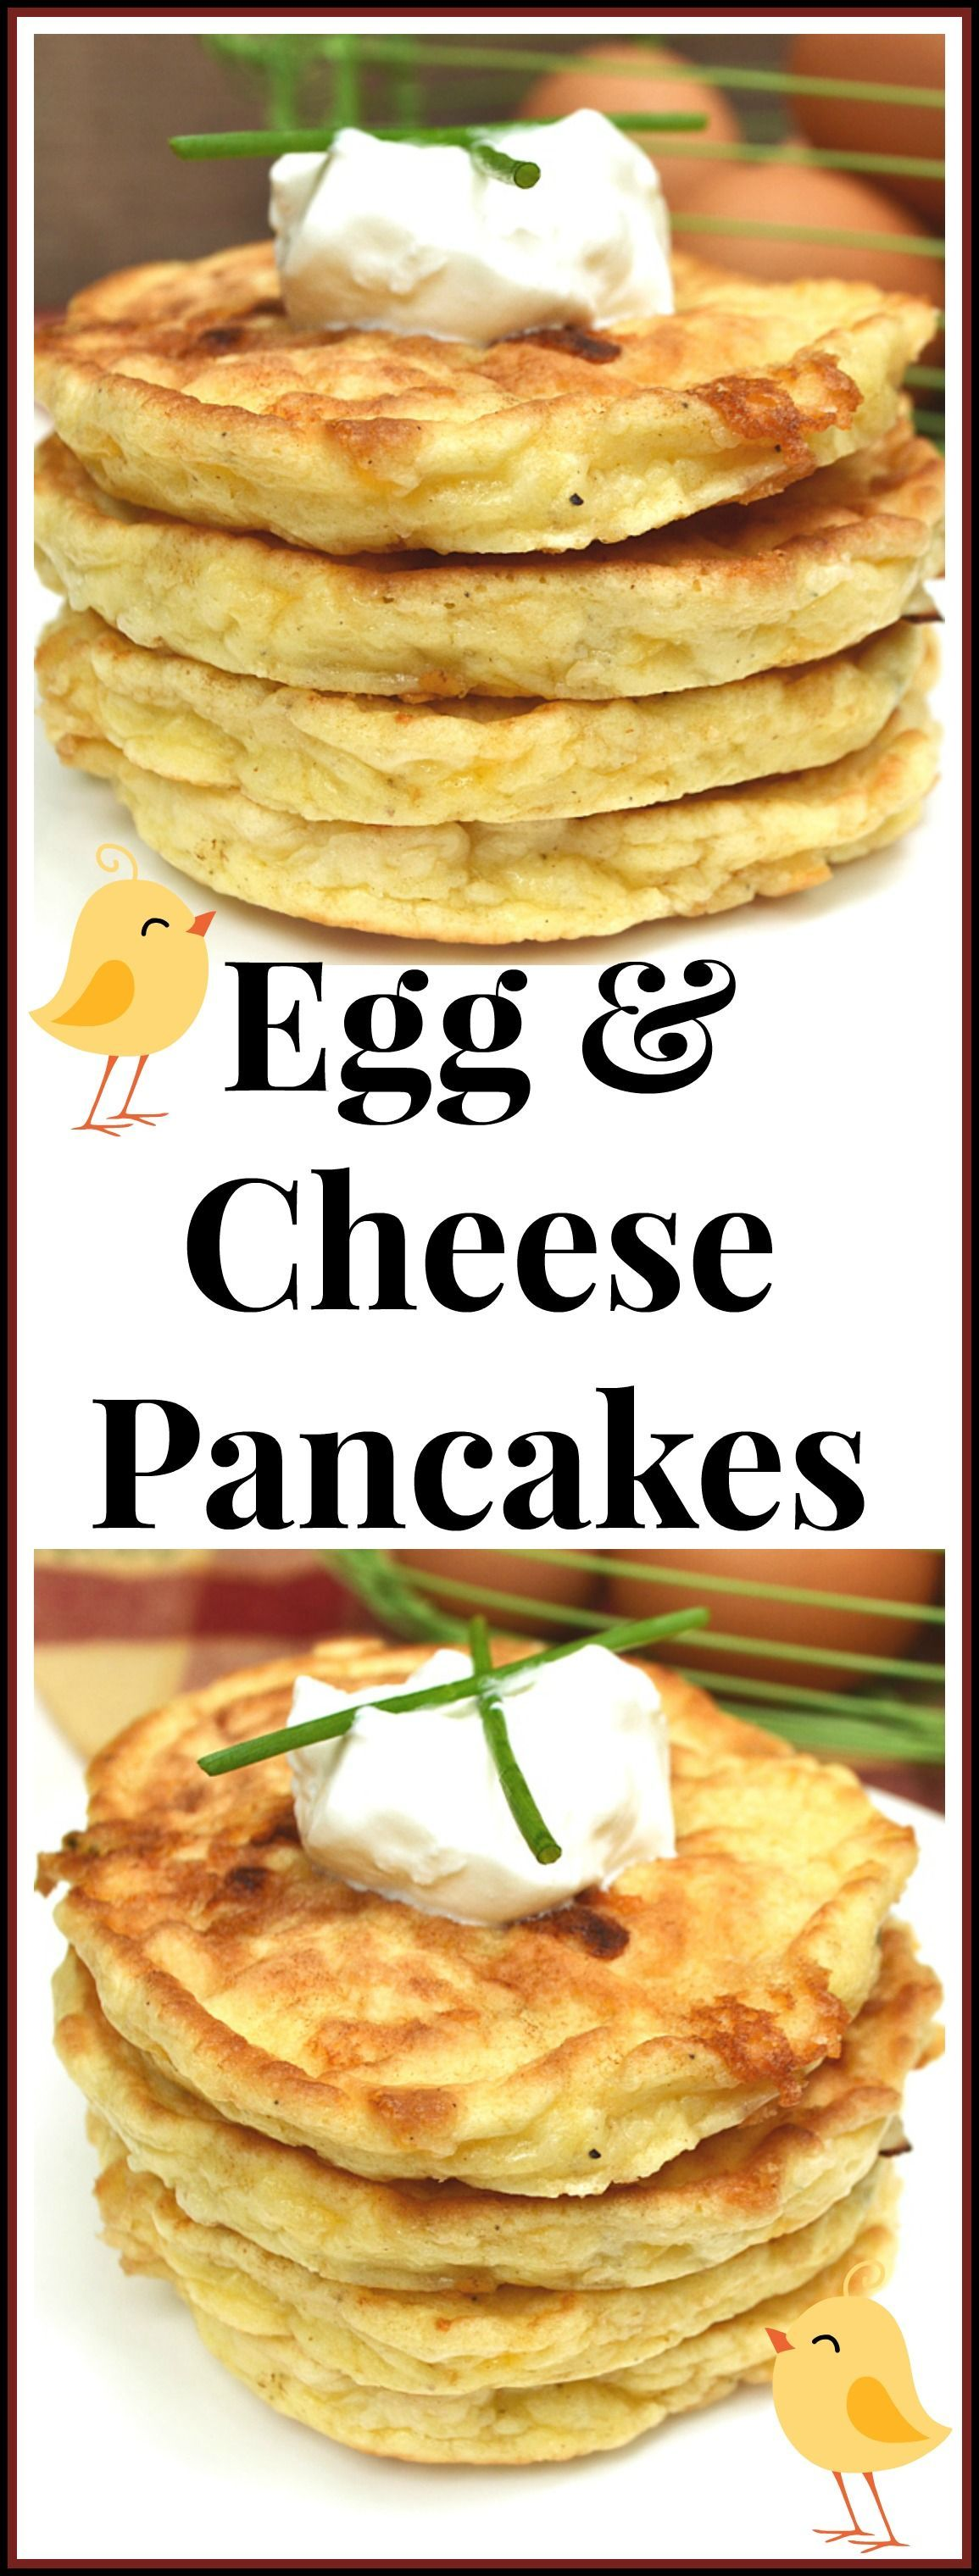 and Cheese Pancakes Perfectly Simple & Delicious Savory Egg and Cheese Pancakes / Griddlecakes | Savory Pancakes | Quick, Easy, Unique Egg Dish | Perfectly Simple & Delicious Savory Egg and Cheese Pancakes / Griddlecakes | Savory Pancakes | Quick, Easy, Unique Egg Dish |